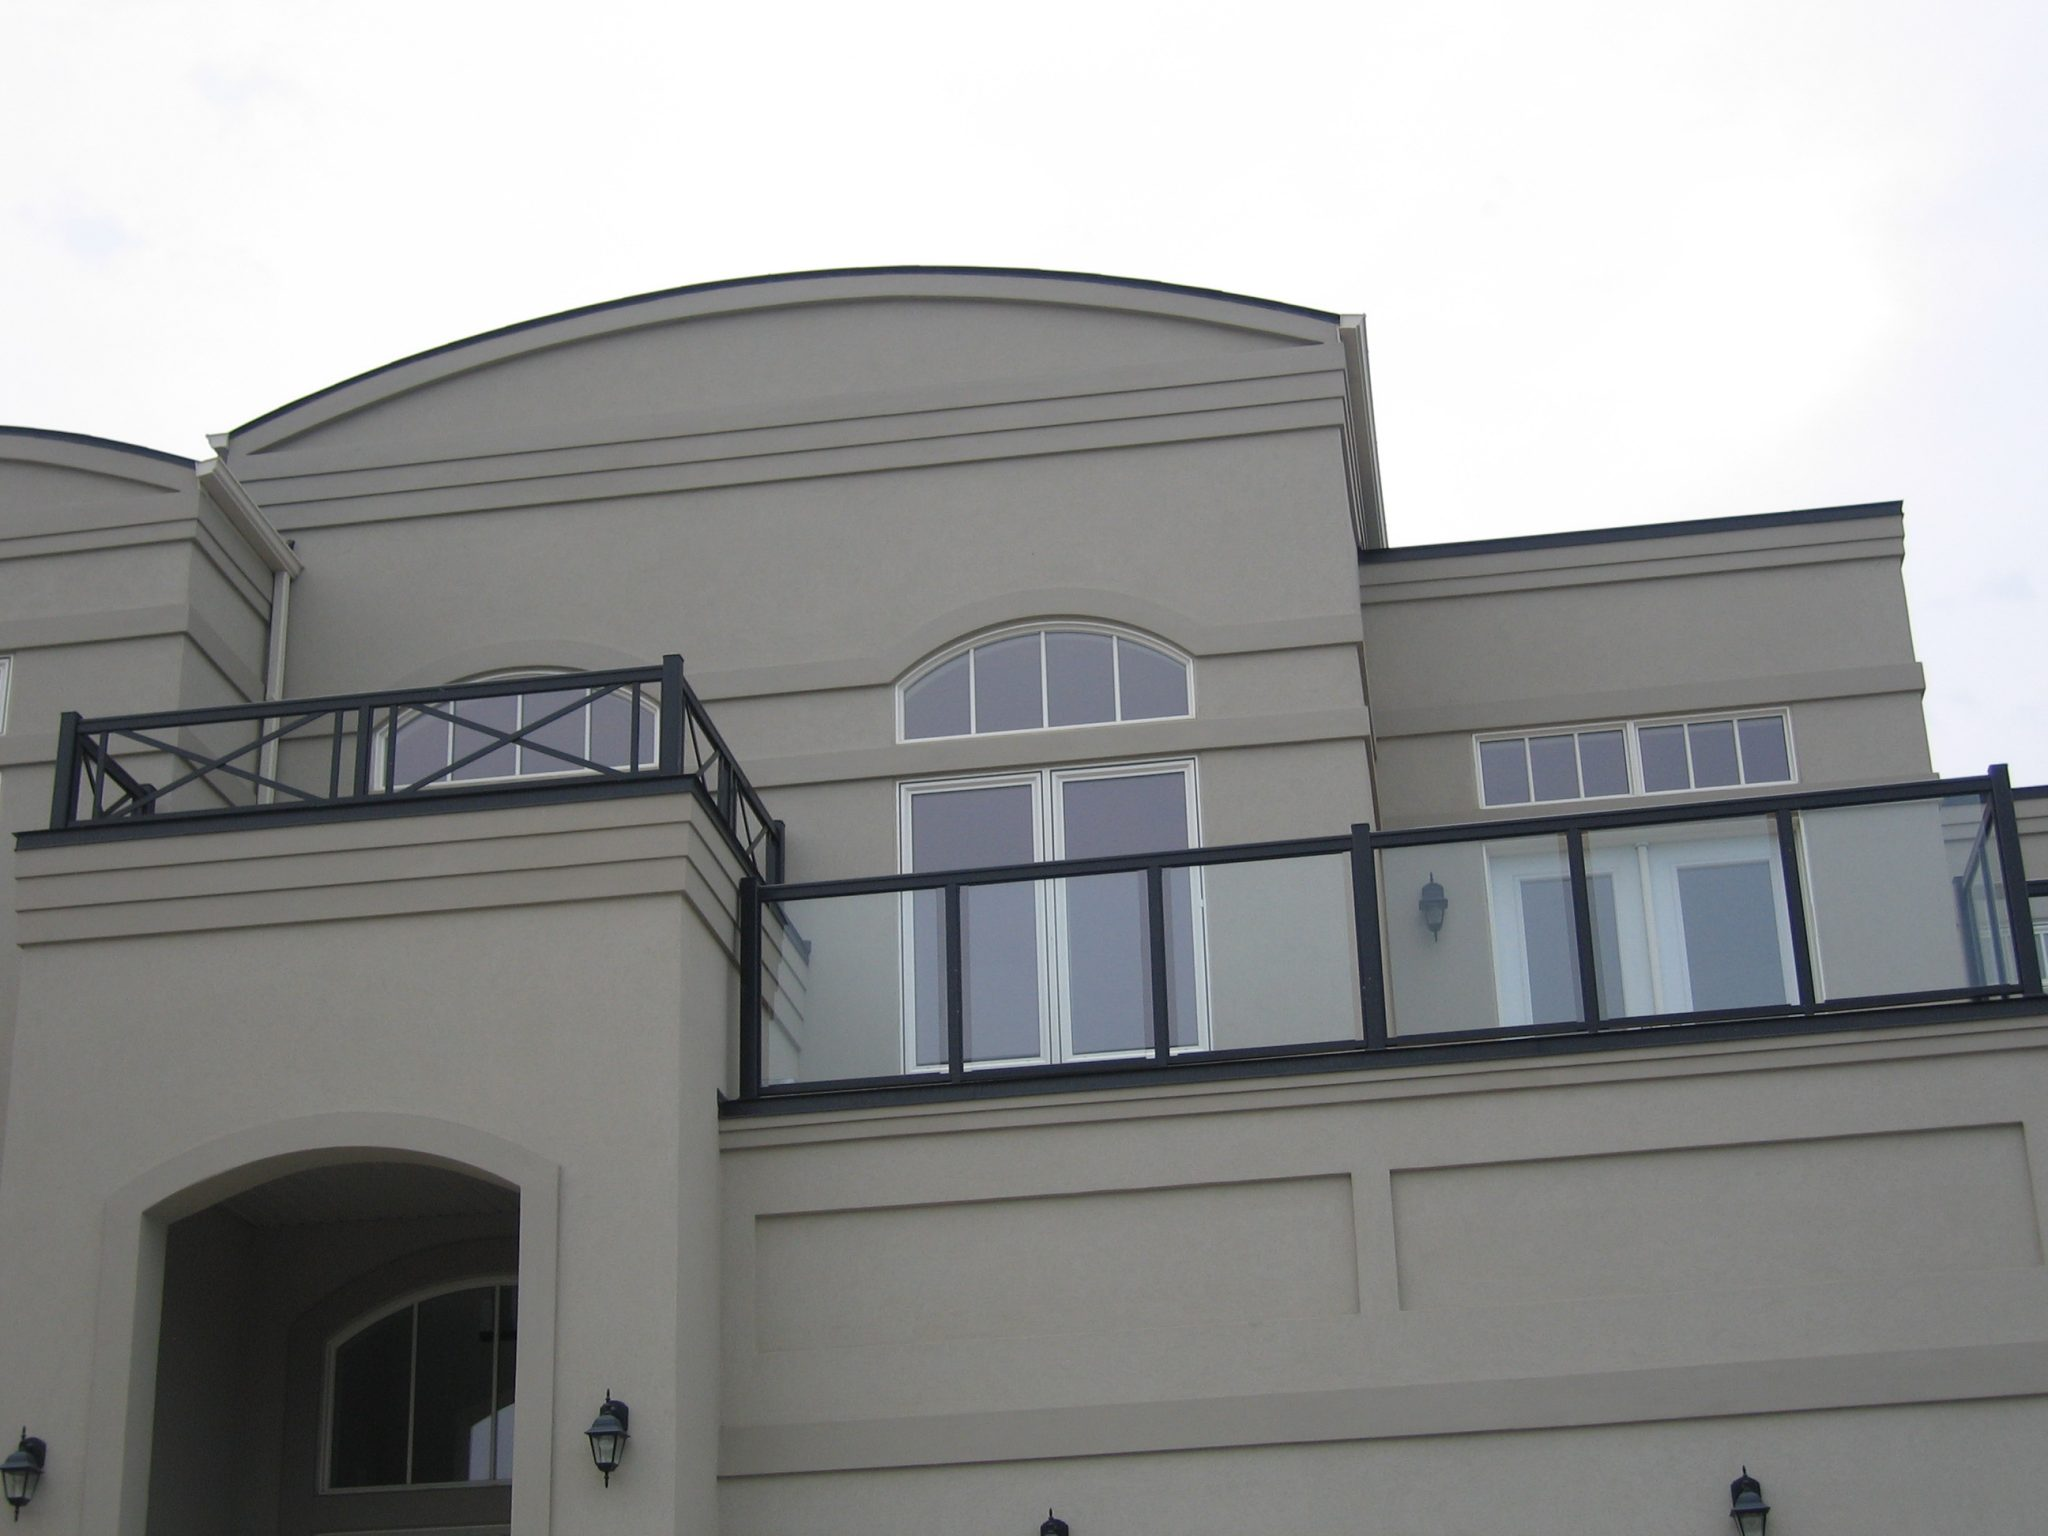 Mansion with canopy roof